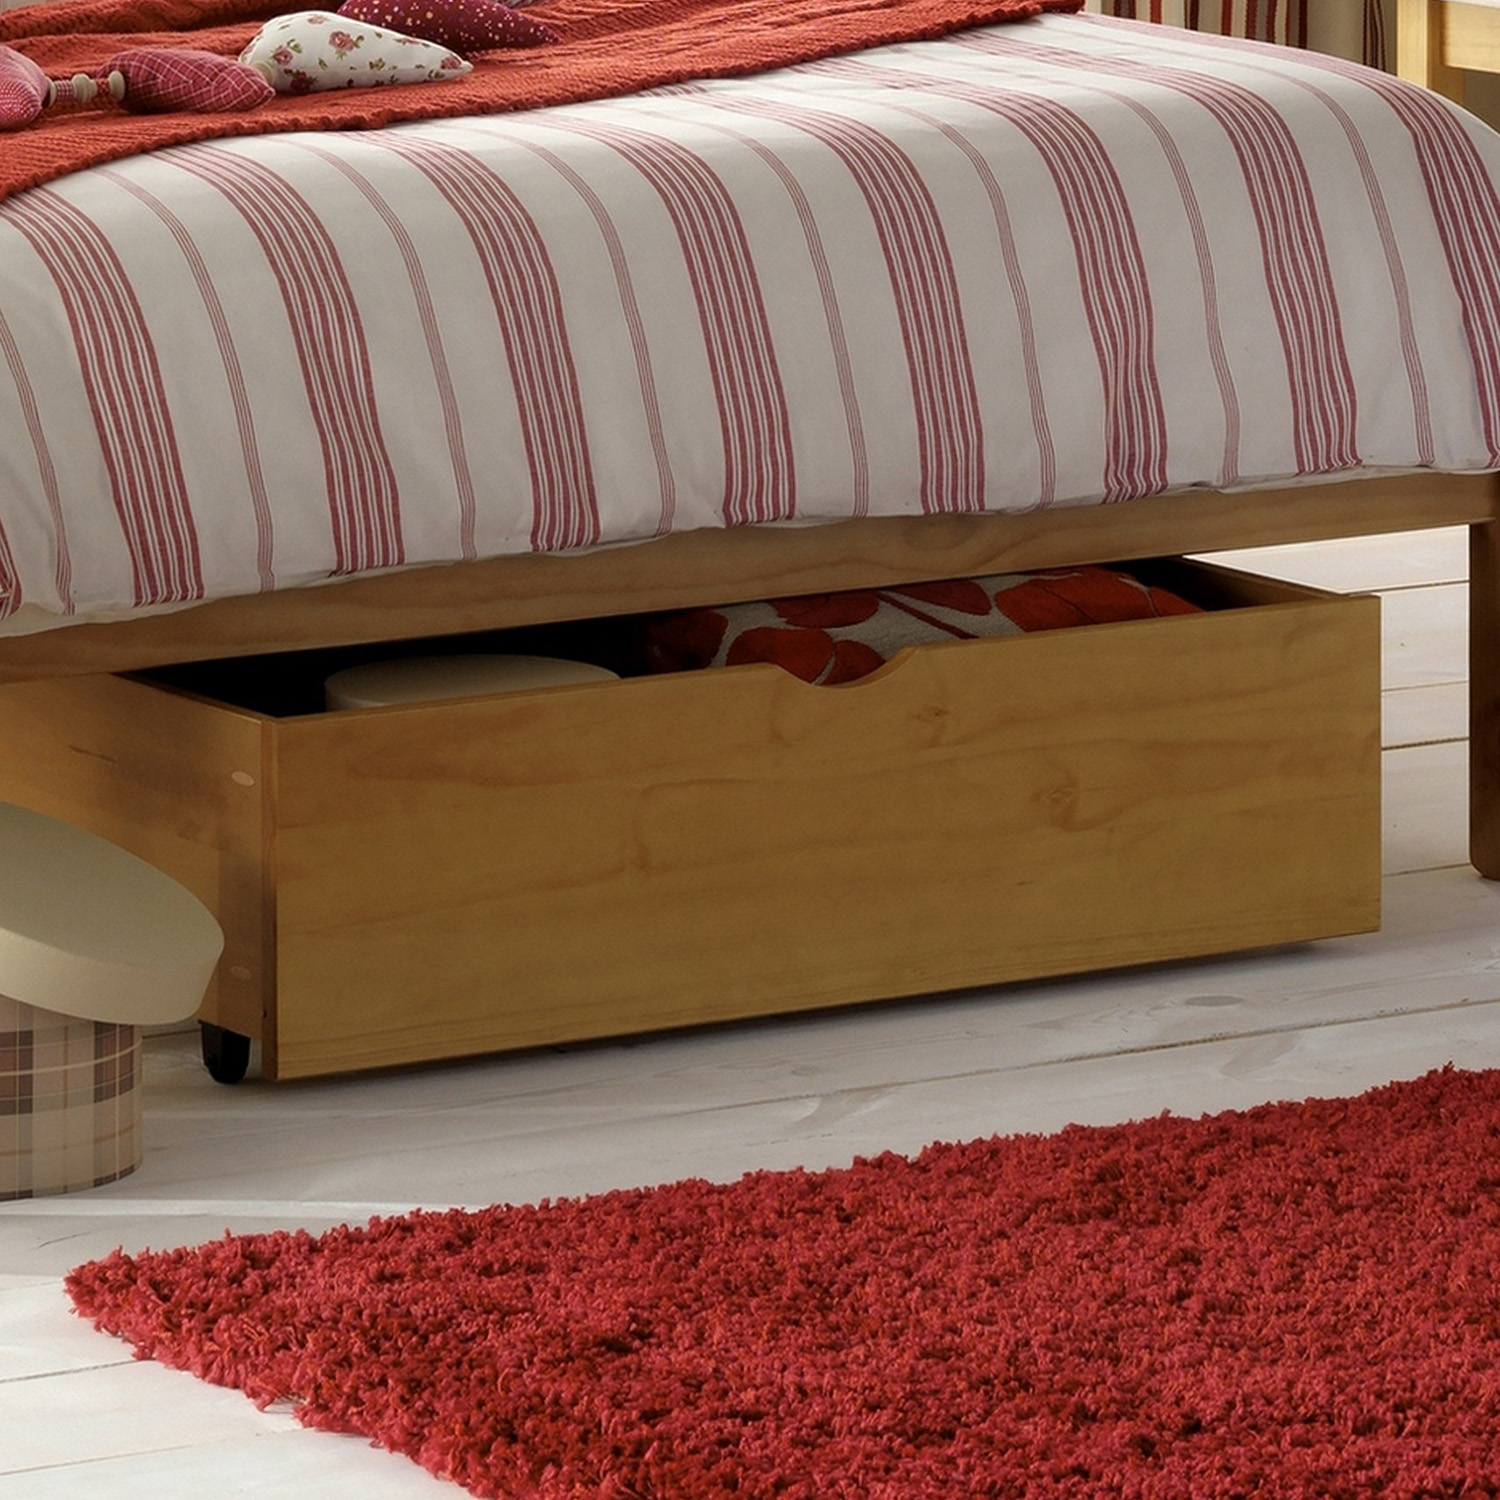 Picture of: Under Bed Storage Boxes Large